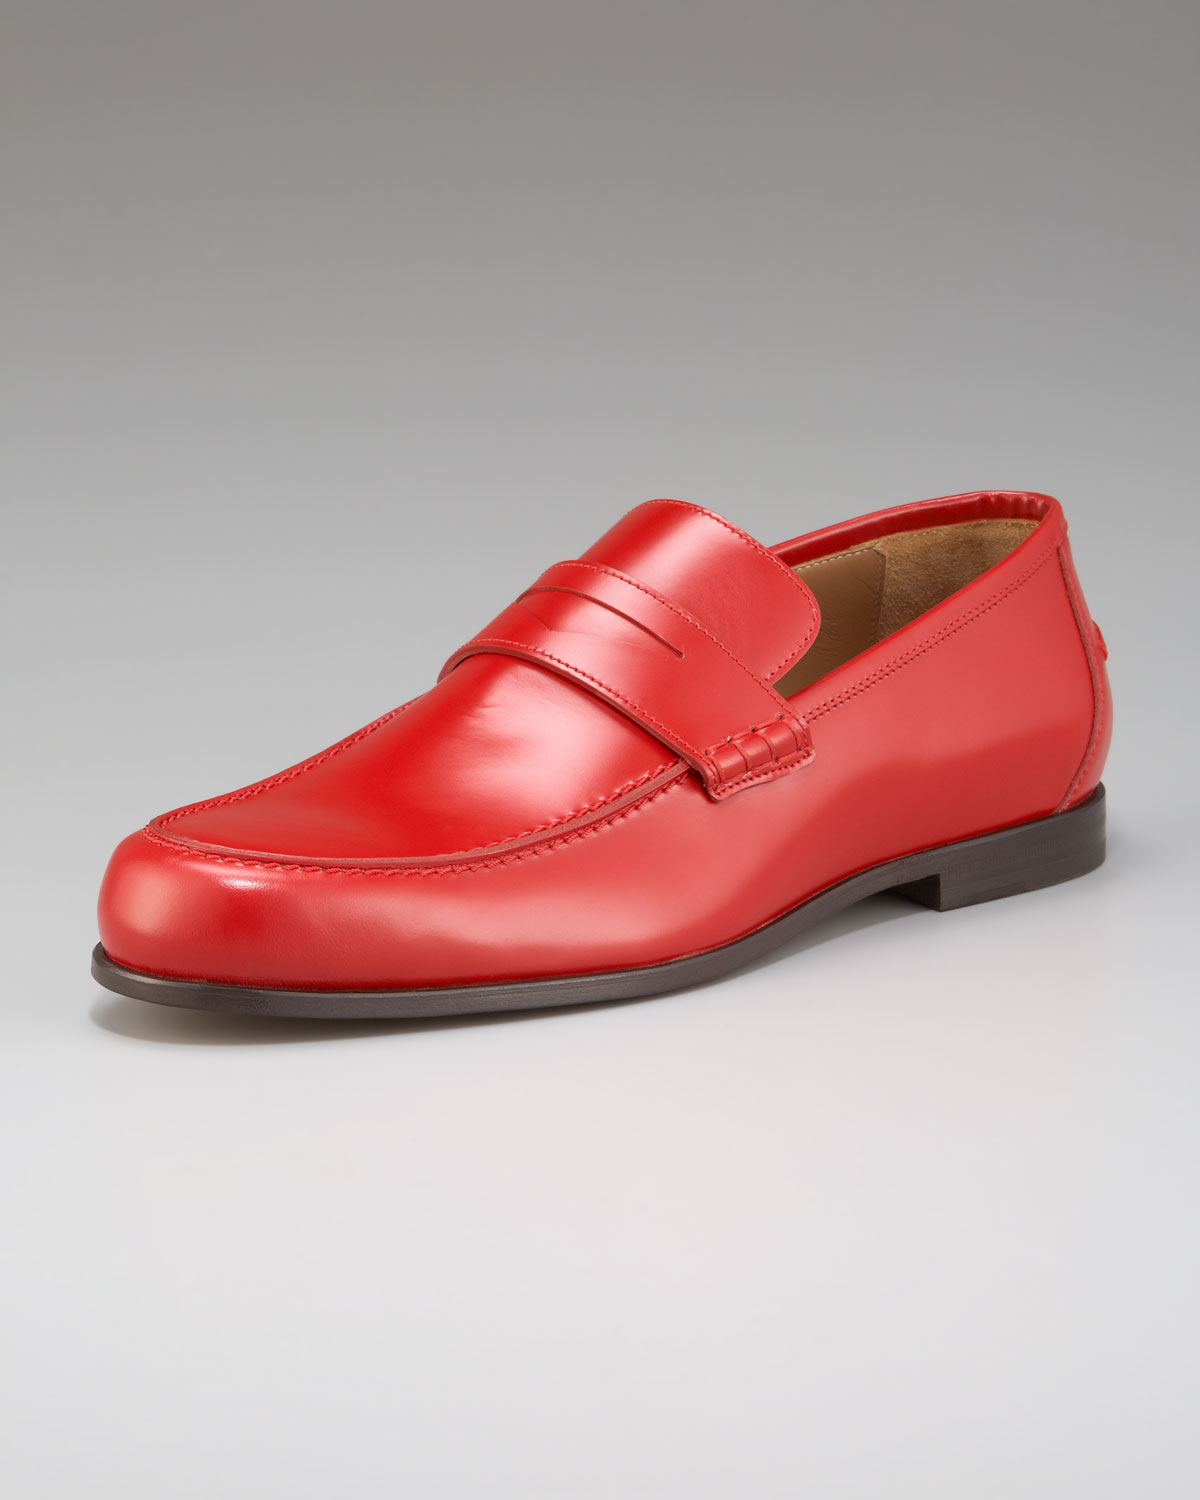 Jimmy Choo Shiny Leather Penny Loafer In Red For Men Lyst